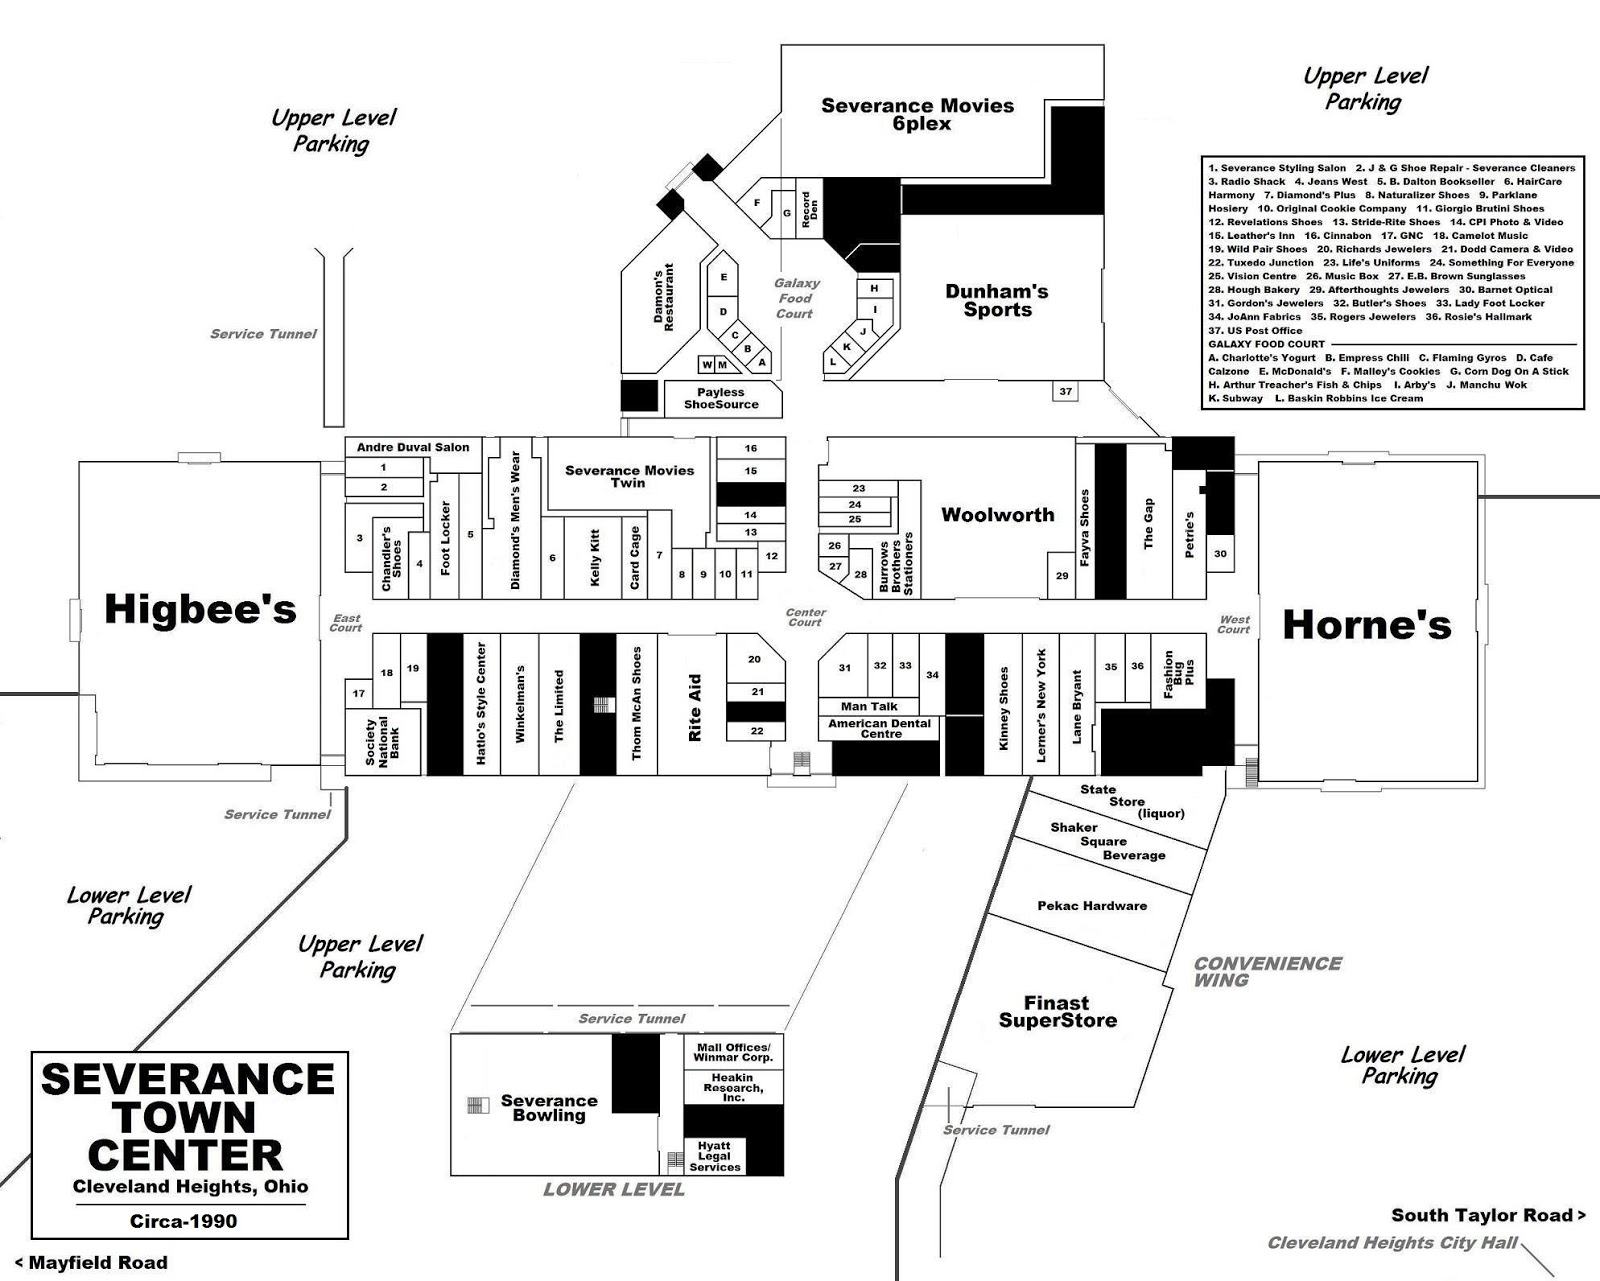 west wing office space layout circa 1990. A Gold Circle Discount Mart Was Added To The Southwest End Of Mall In 1981. Store Closed For Good 1984. Its Vacancy Expanded And Retenanted West Wing Office Space Layout Circa 1990